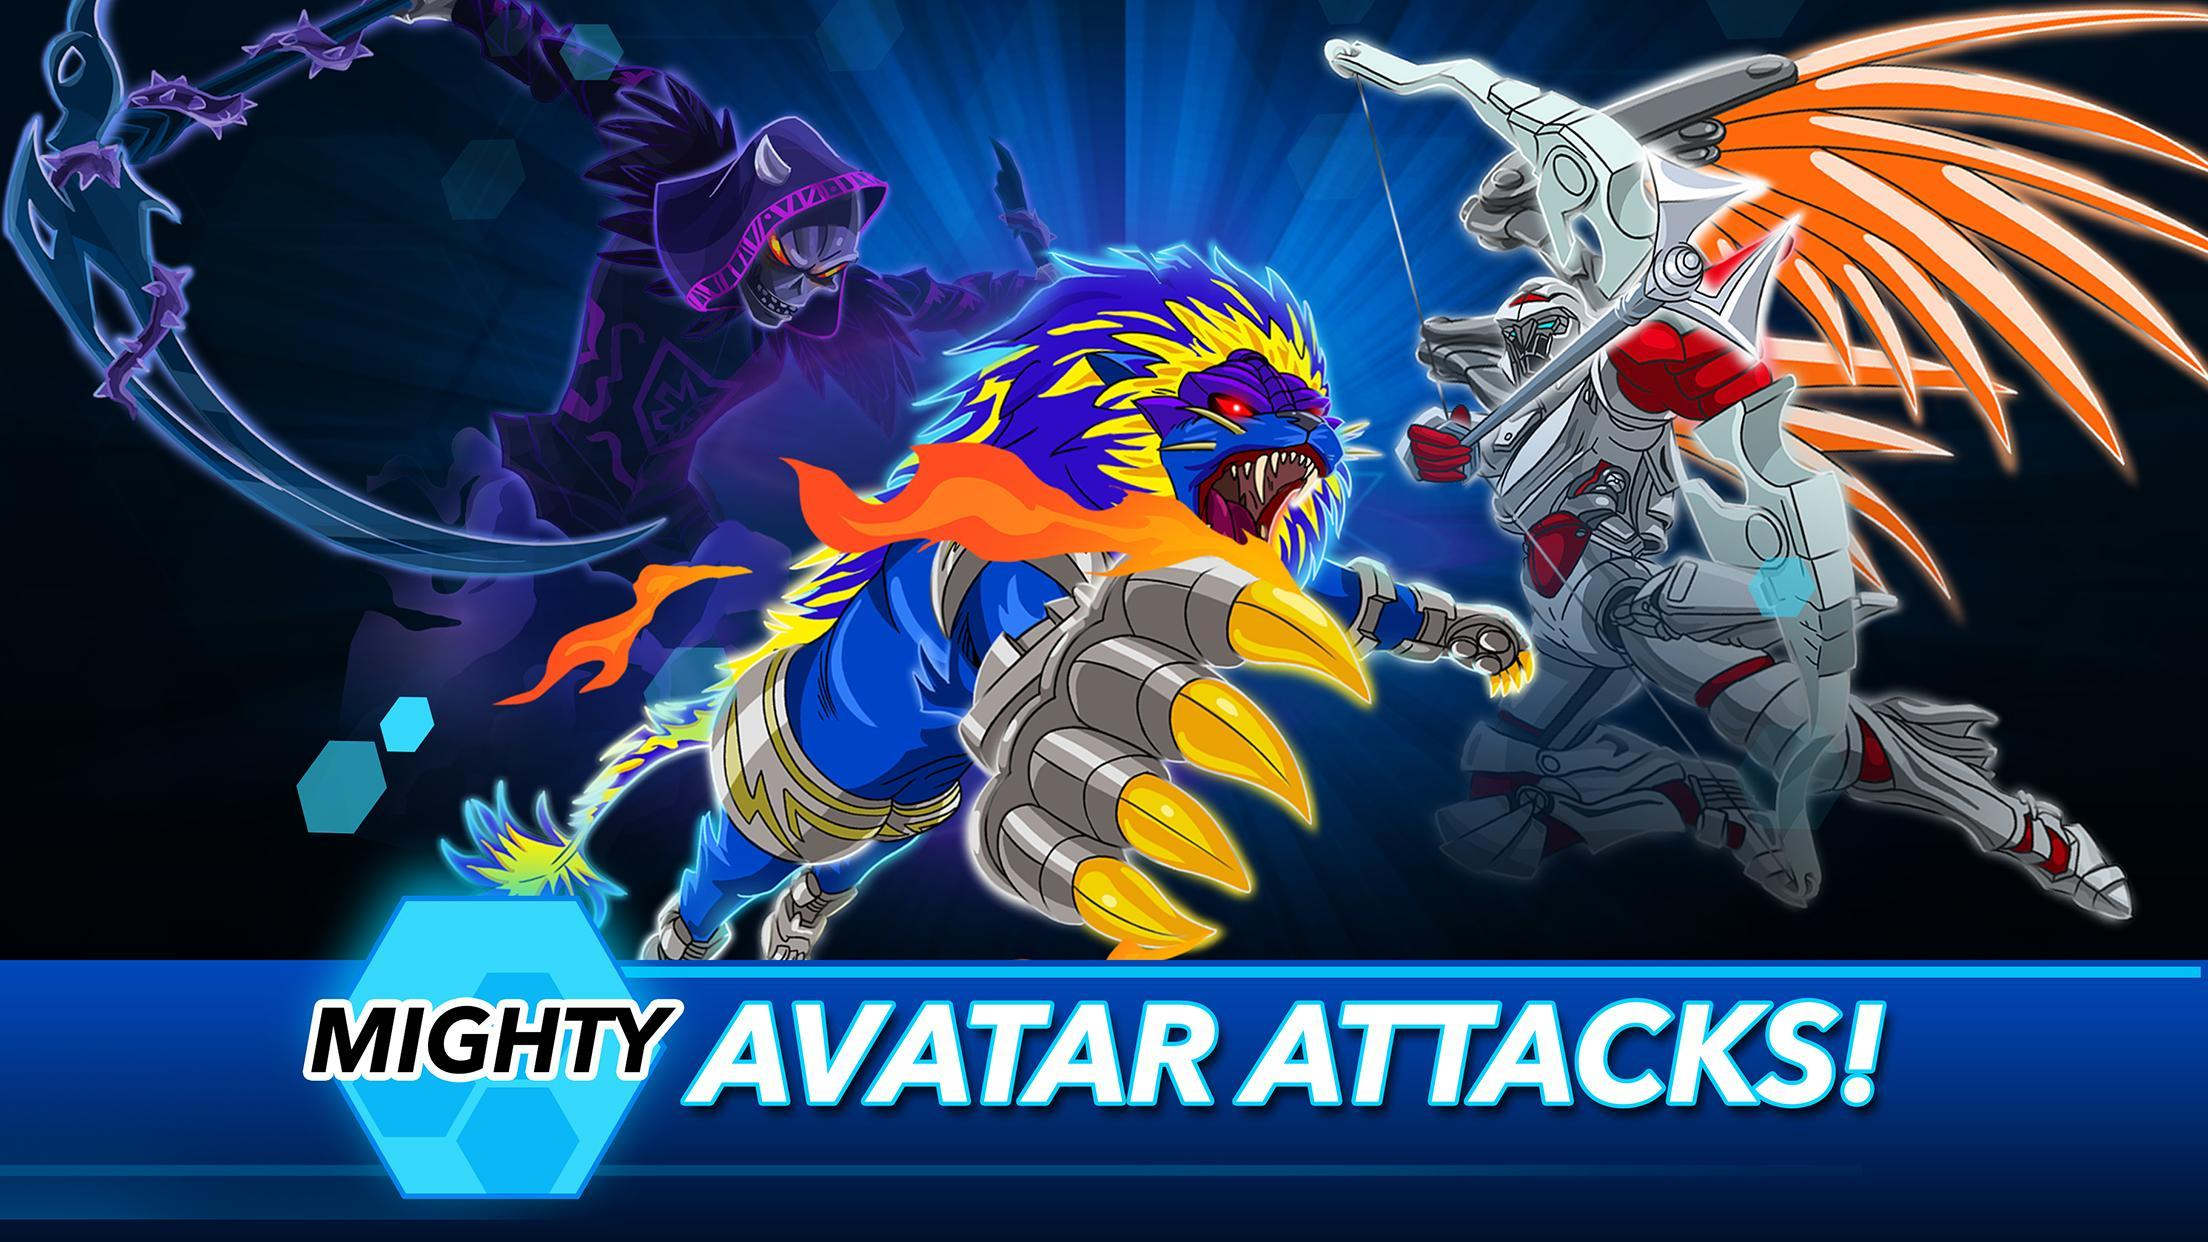 BEYBLADE BURST for Android - APK Download